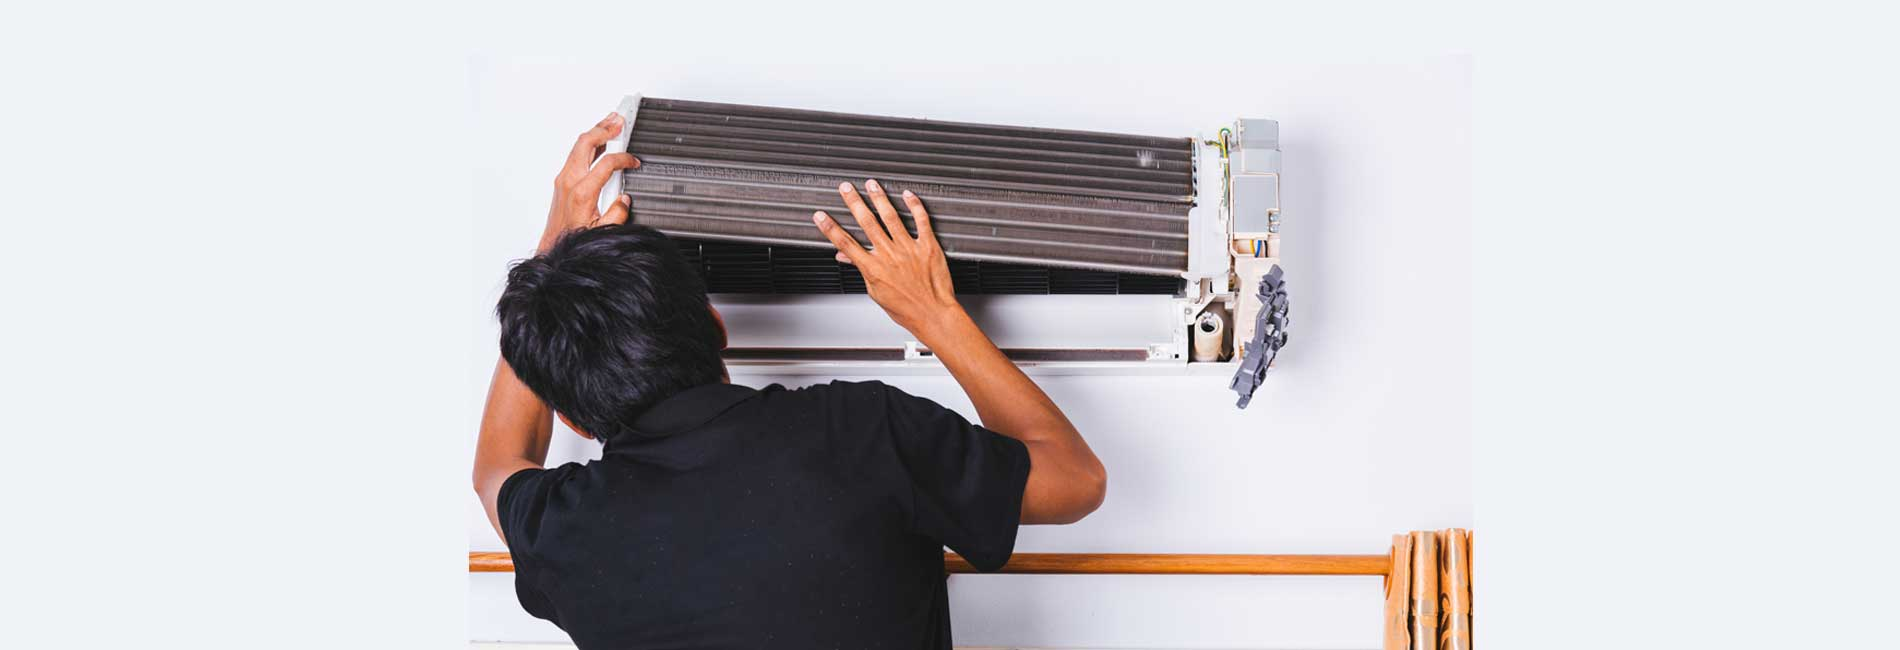 Air Condition Service in Urapakkam